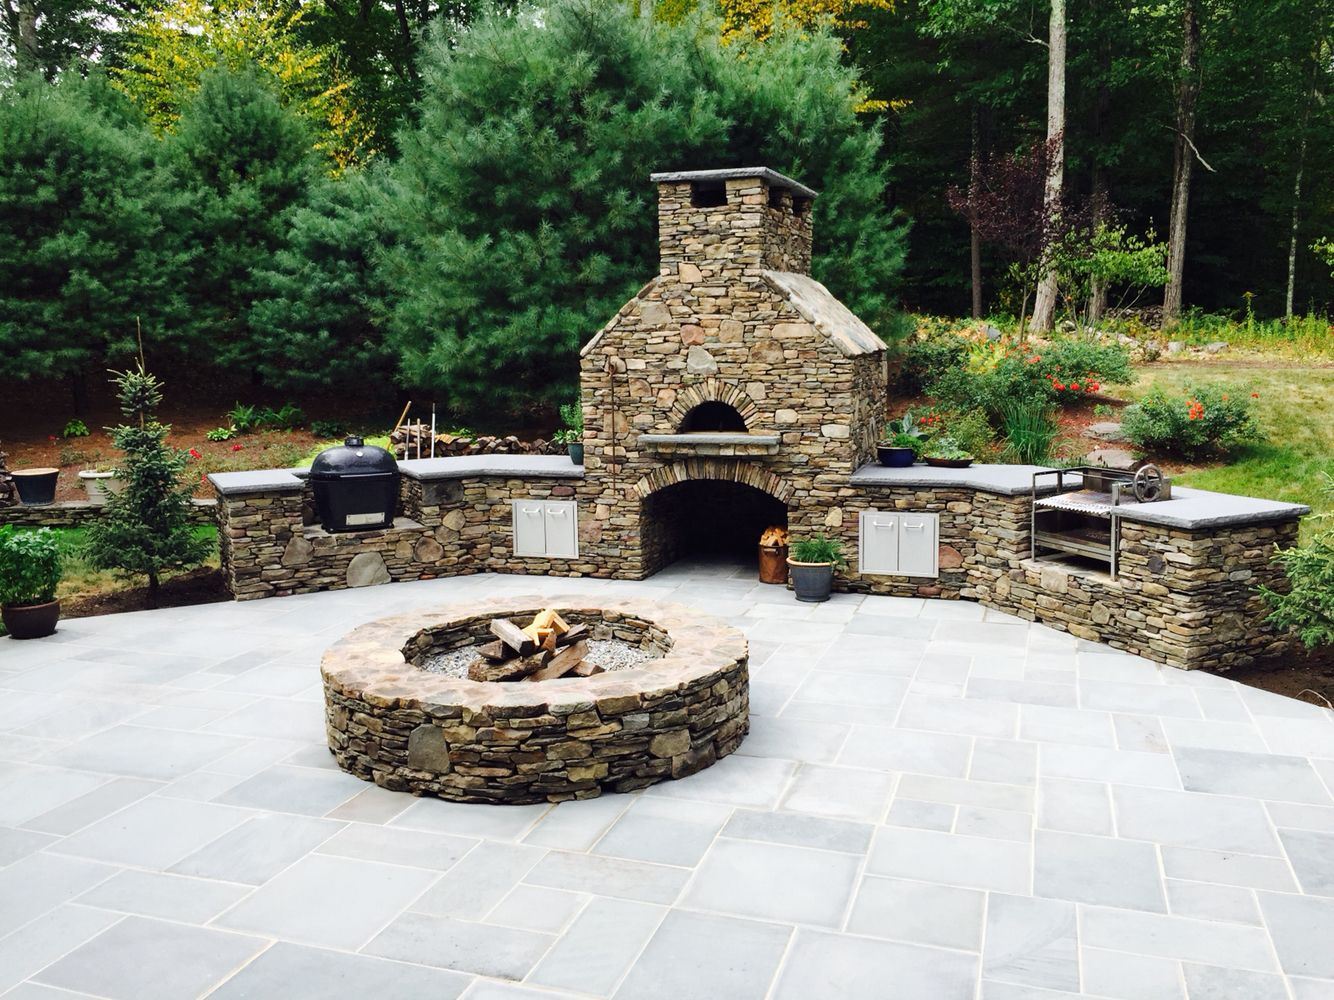 Outdoor Kitchen Oven Cheap Stainless Steel Appliances With Pizza Fire Pit Smoker And